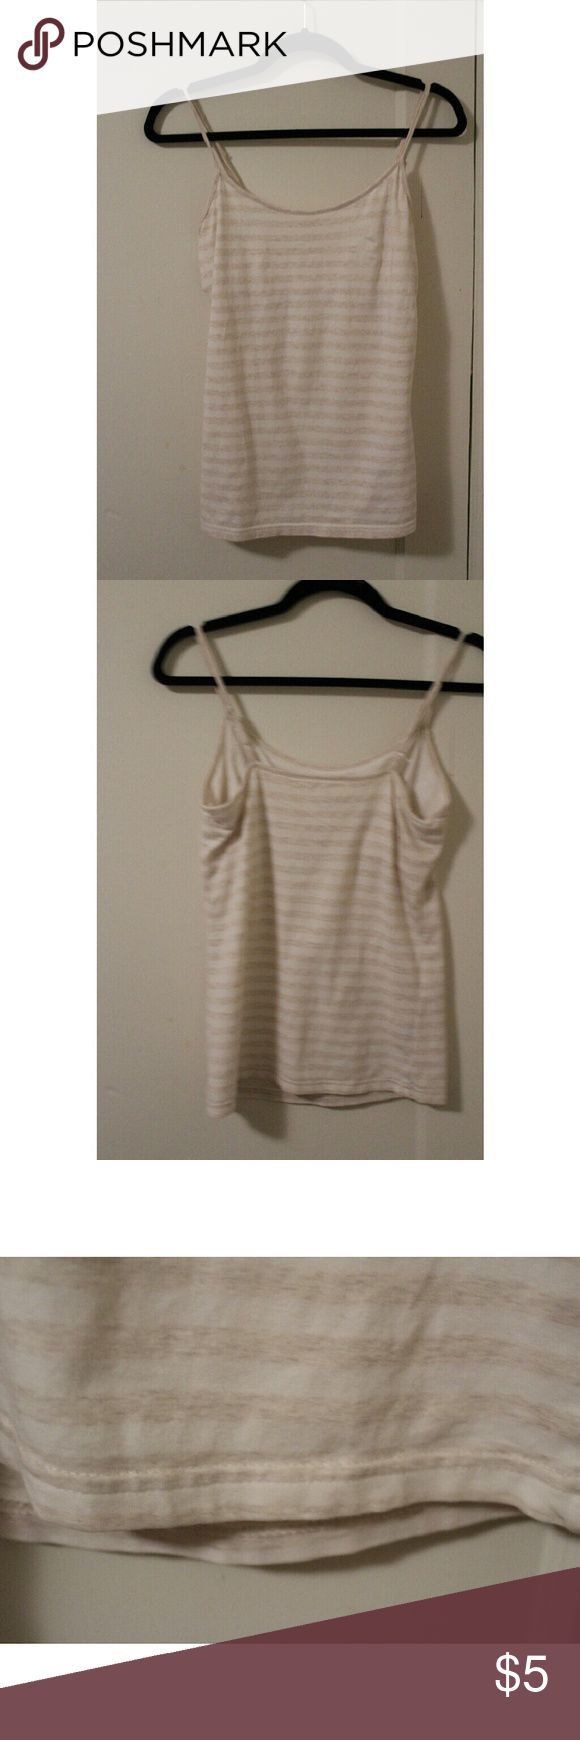 Gap Cami This cream and white striped cami features a built-in shelf bra and is in good condition. GAP Tops